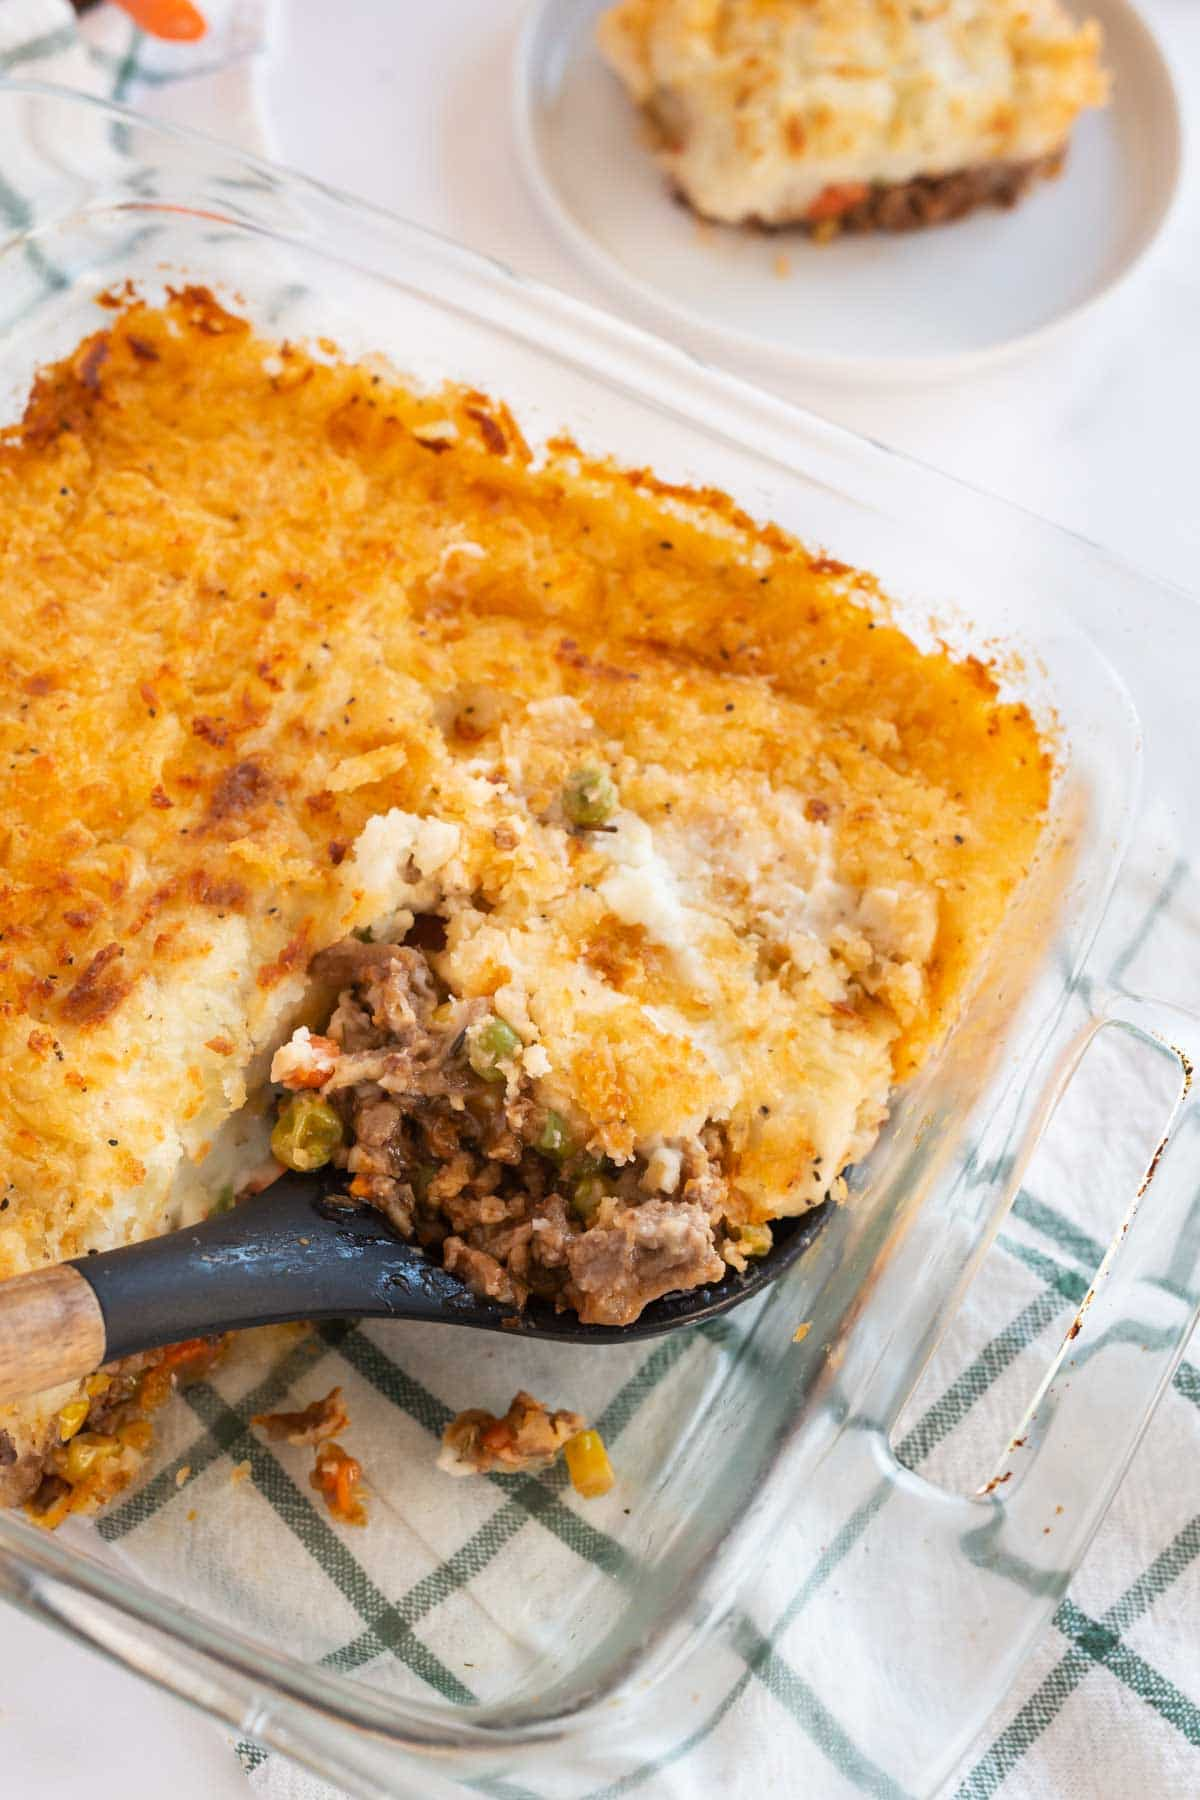 A spoon scooping a scoop of shepherd's pie out of a baking dish